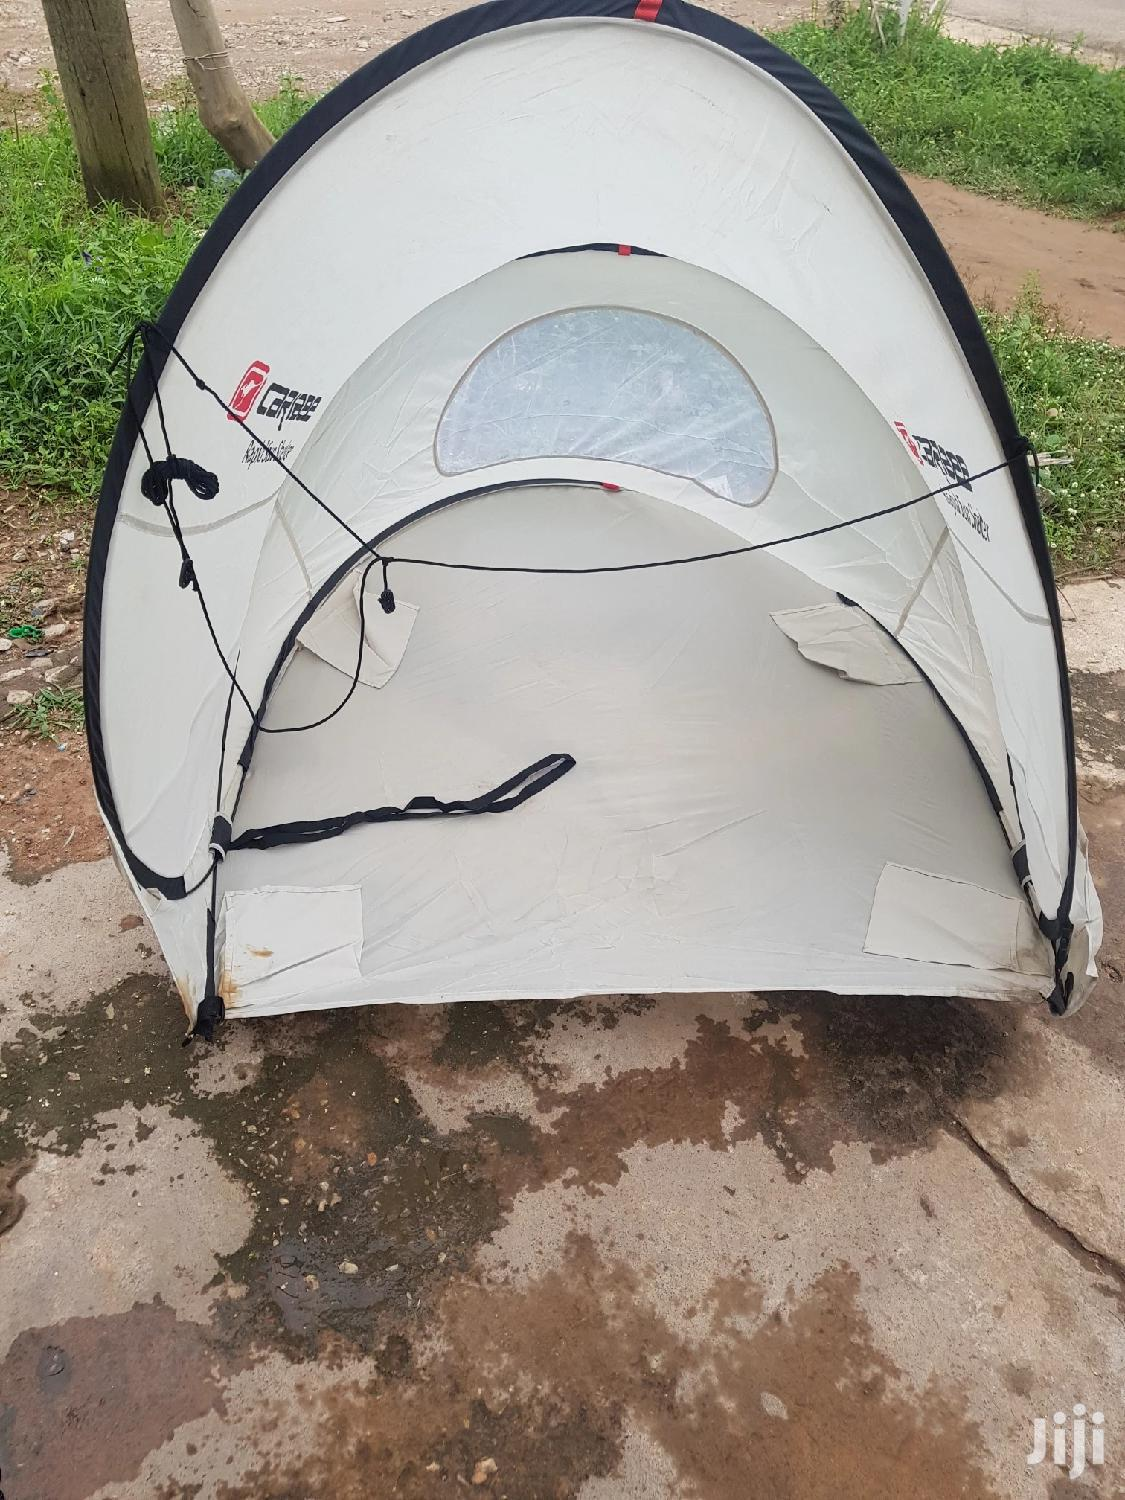 Tents & Sun Shields | Camping Gear for sale in Achimota, Greater Accra, Ghana